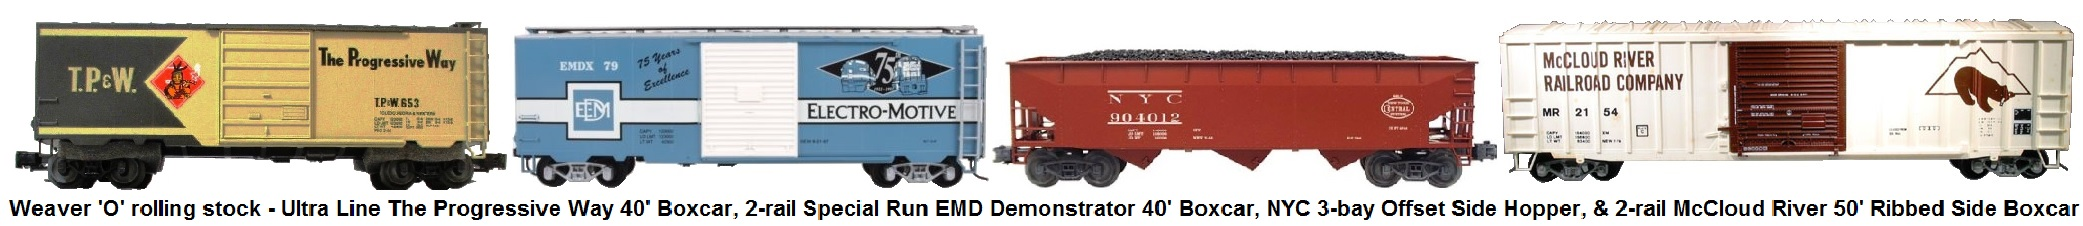 Weaver 'O' scale rolling stock - Ultra Line The Progressive Way TP&W #653 40' boxcar, EMD 75th Anniversary special run 2-rail 40' boxcar, NYC 3-bay offset side hopper, and McLoud River 50' ribbed side boxcar